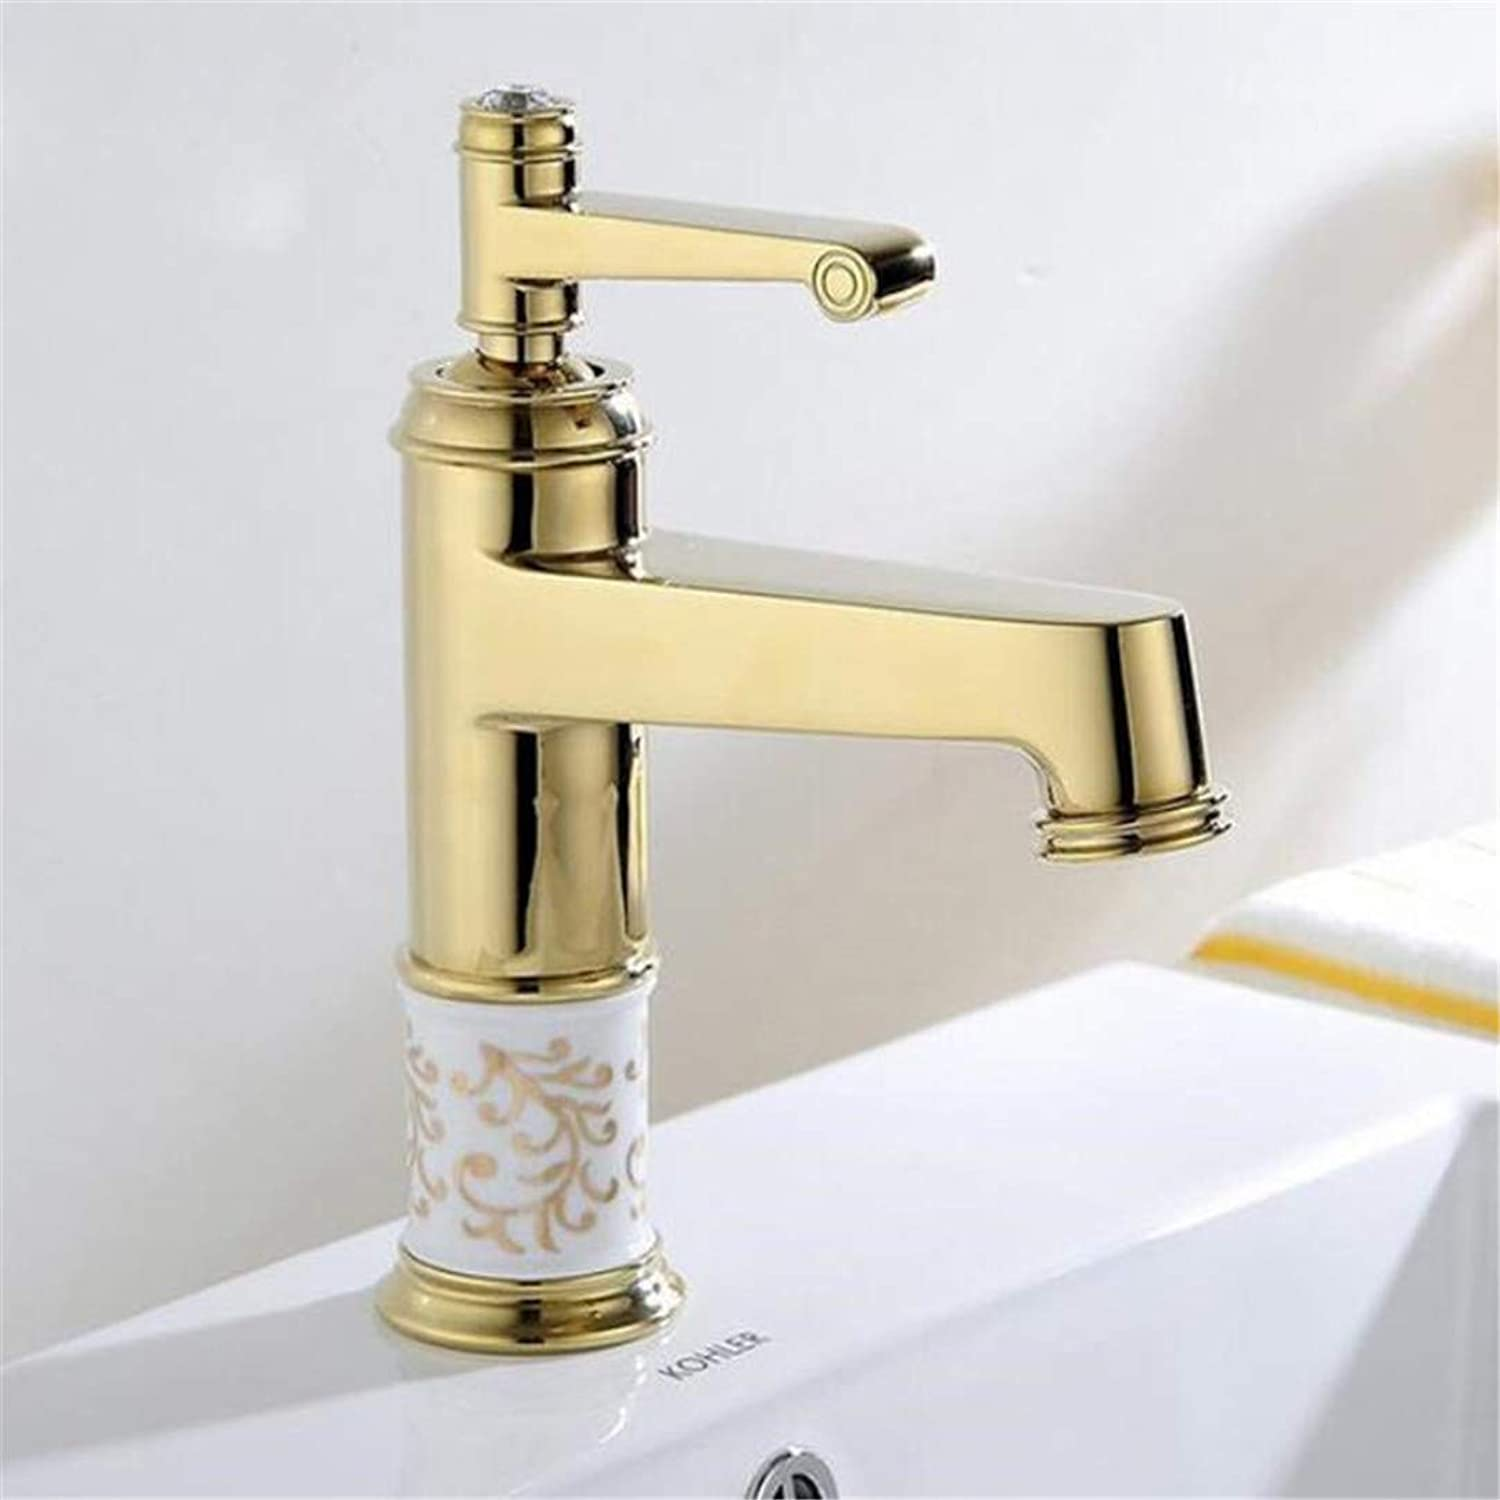 Hot and Cold Basin Faucet Hole Sitting gold-Plated Ceramic Audience Basin Faucet Washing Hands